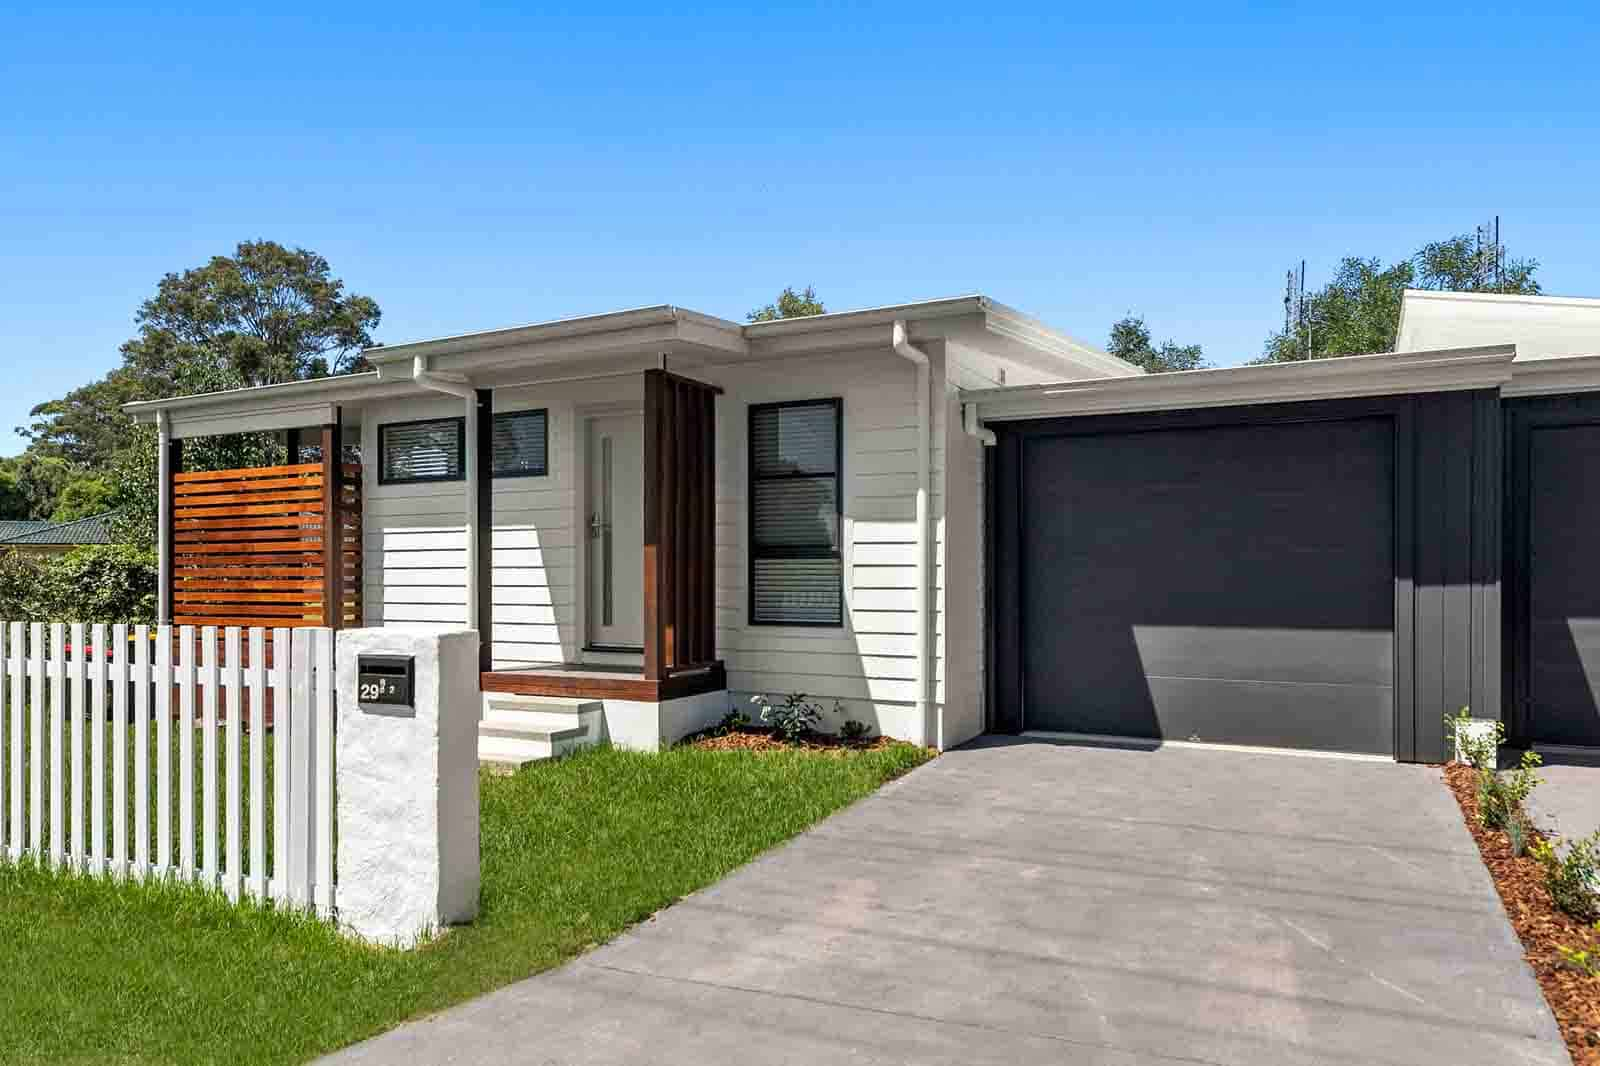 Attached Granny Flats: What Are the Benefits?